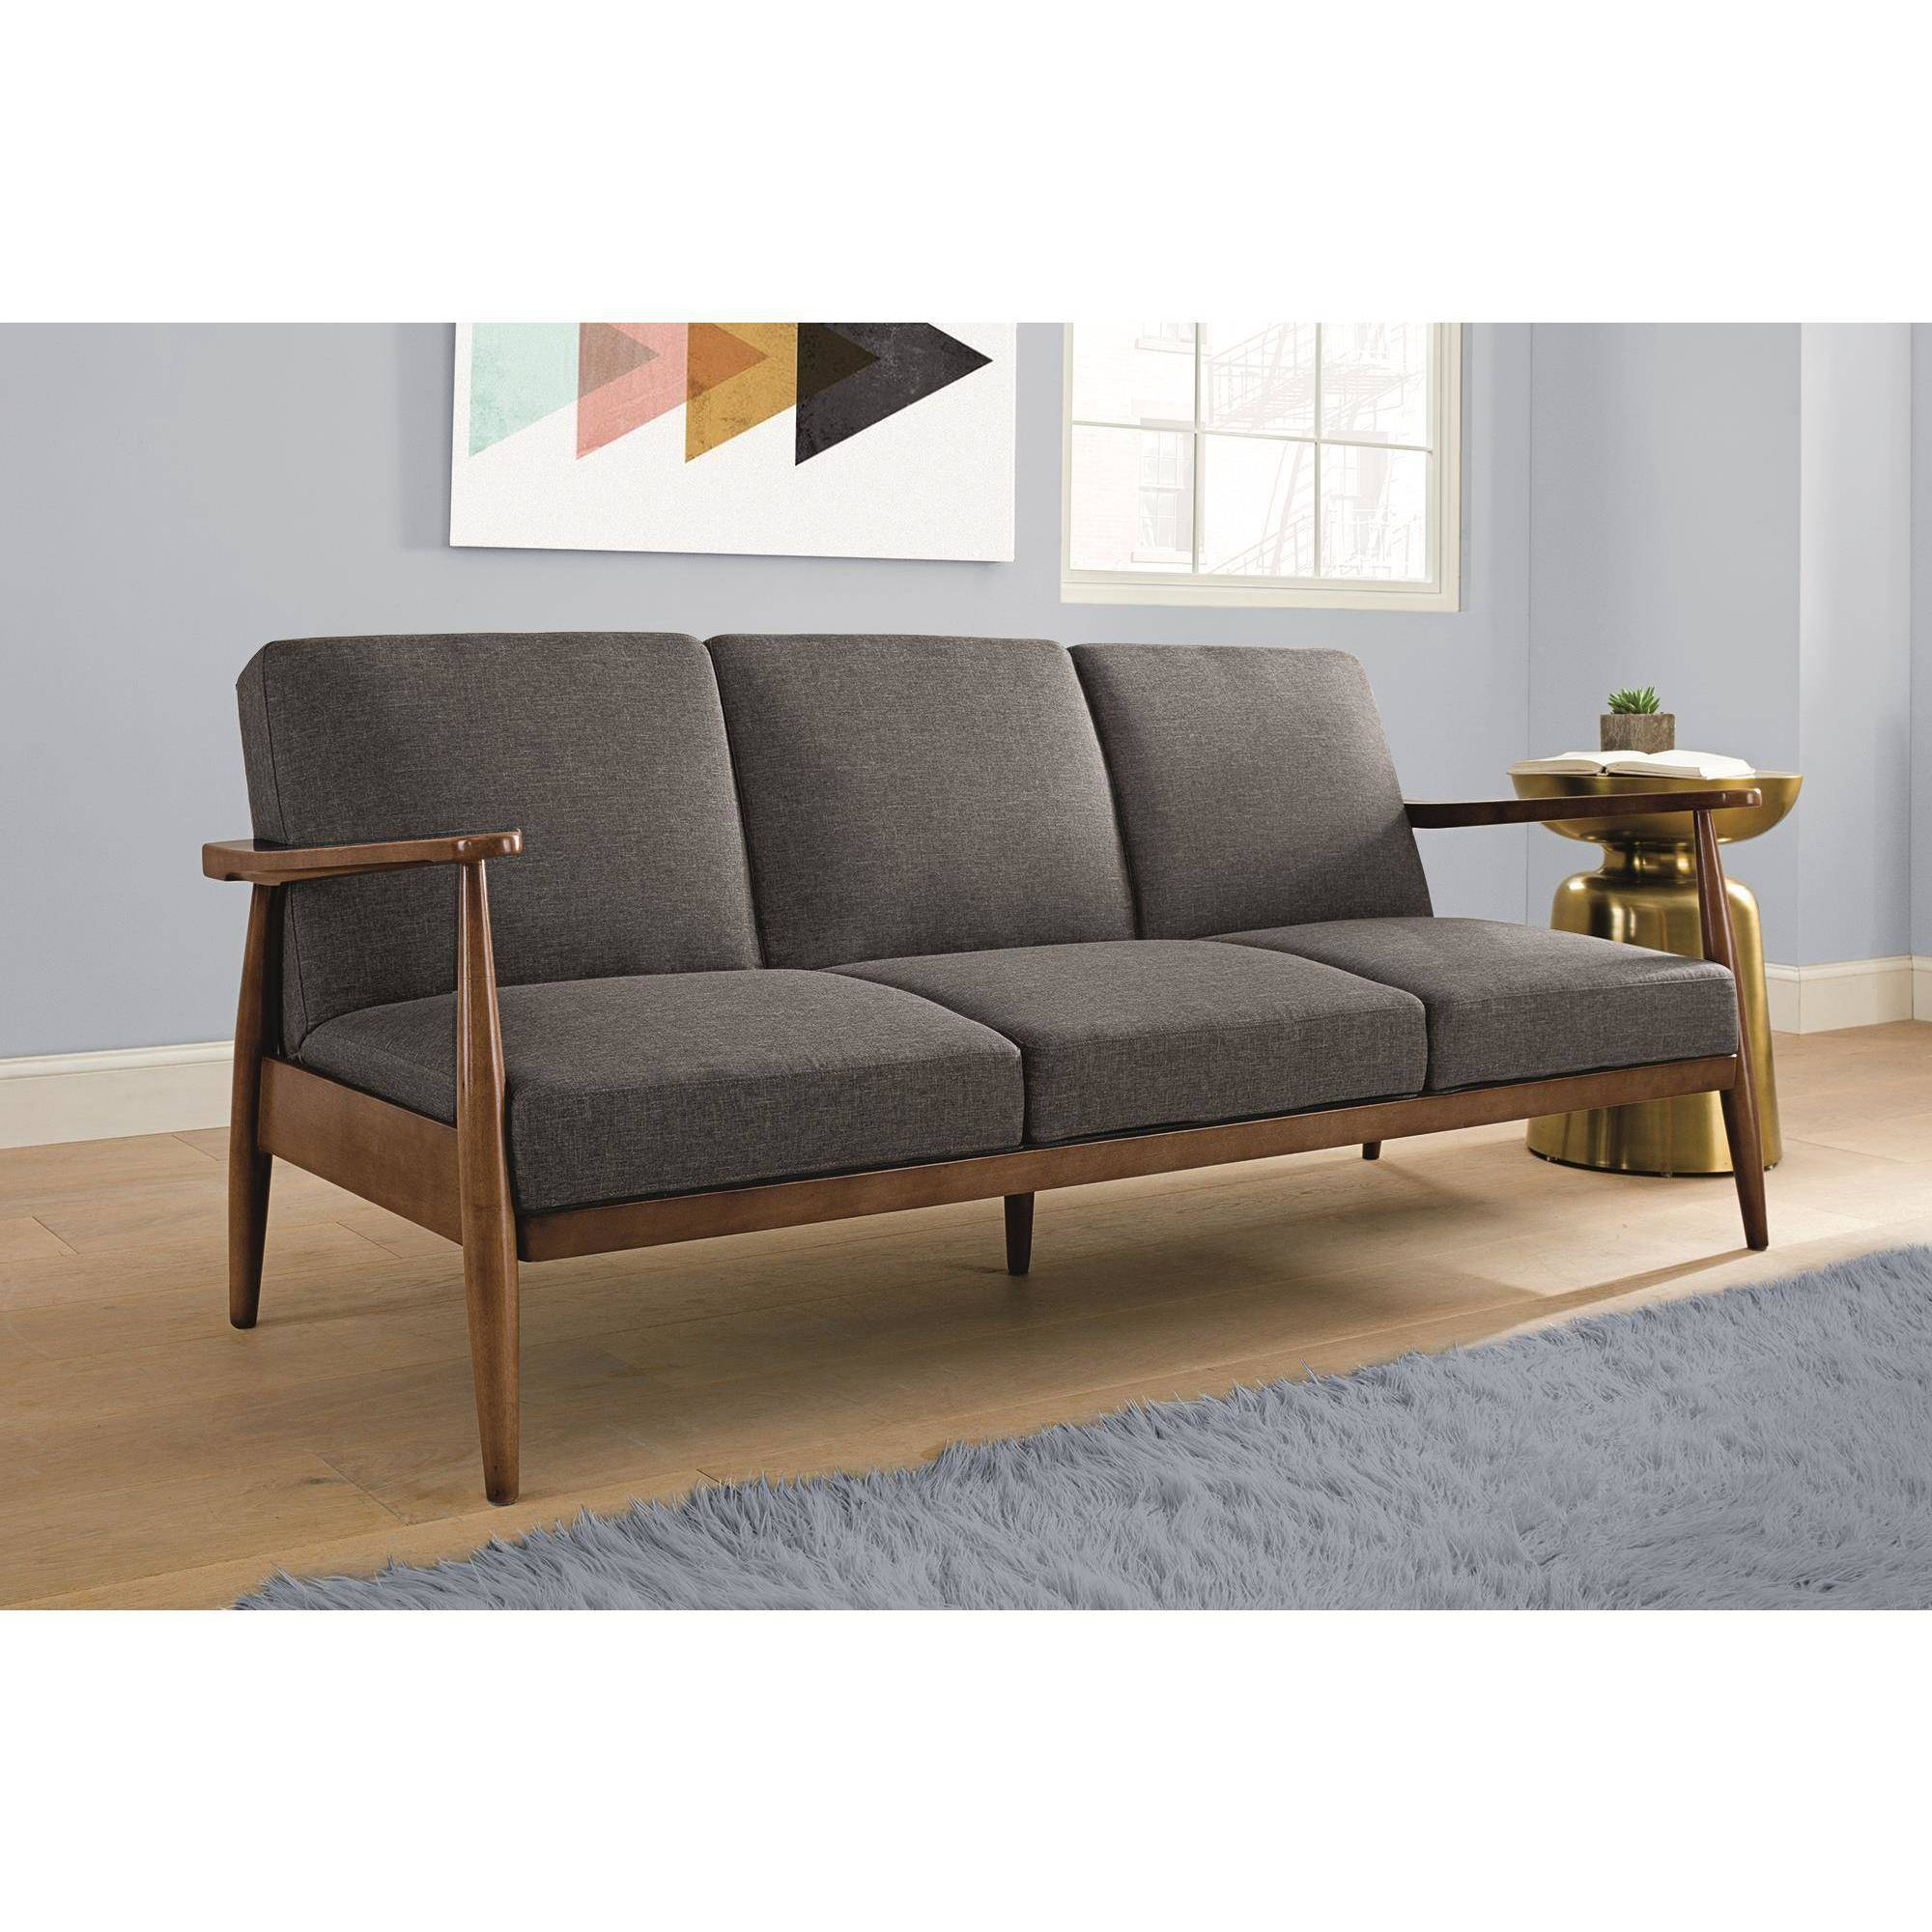 better homes and gardens flynn mid century futon multiple colors better homes and gardens flynn mid century futon multiple colors      rh   walmart